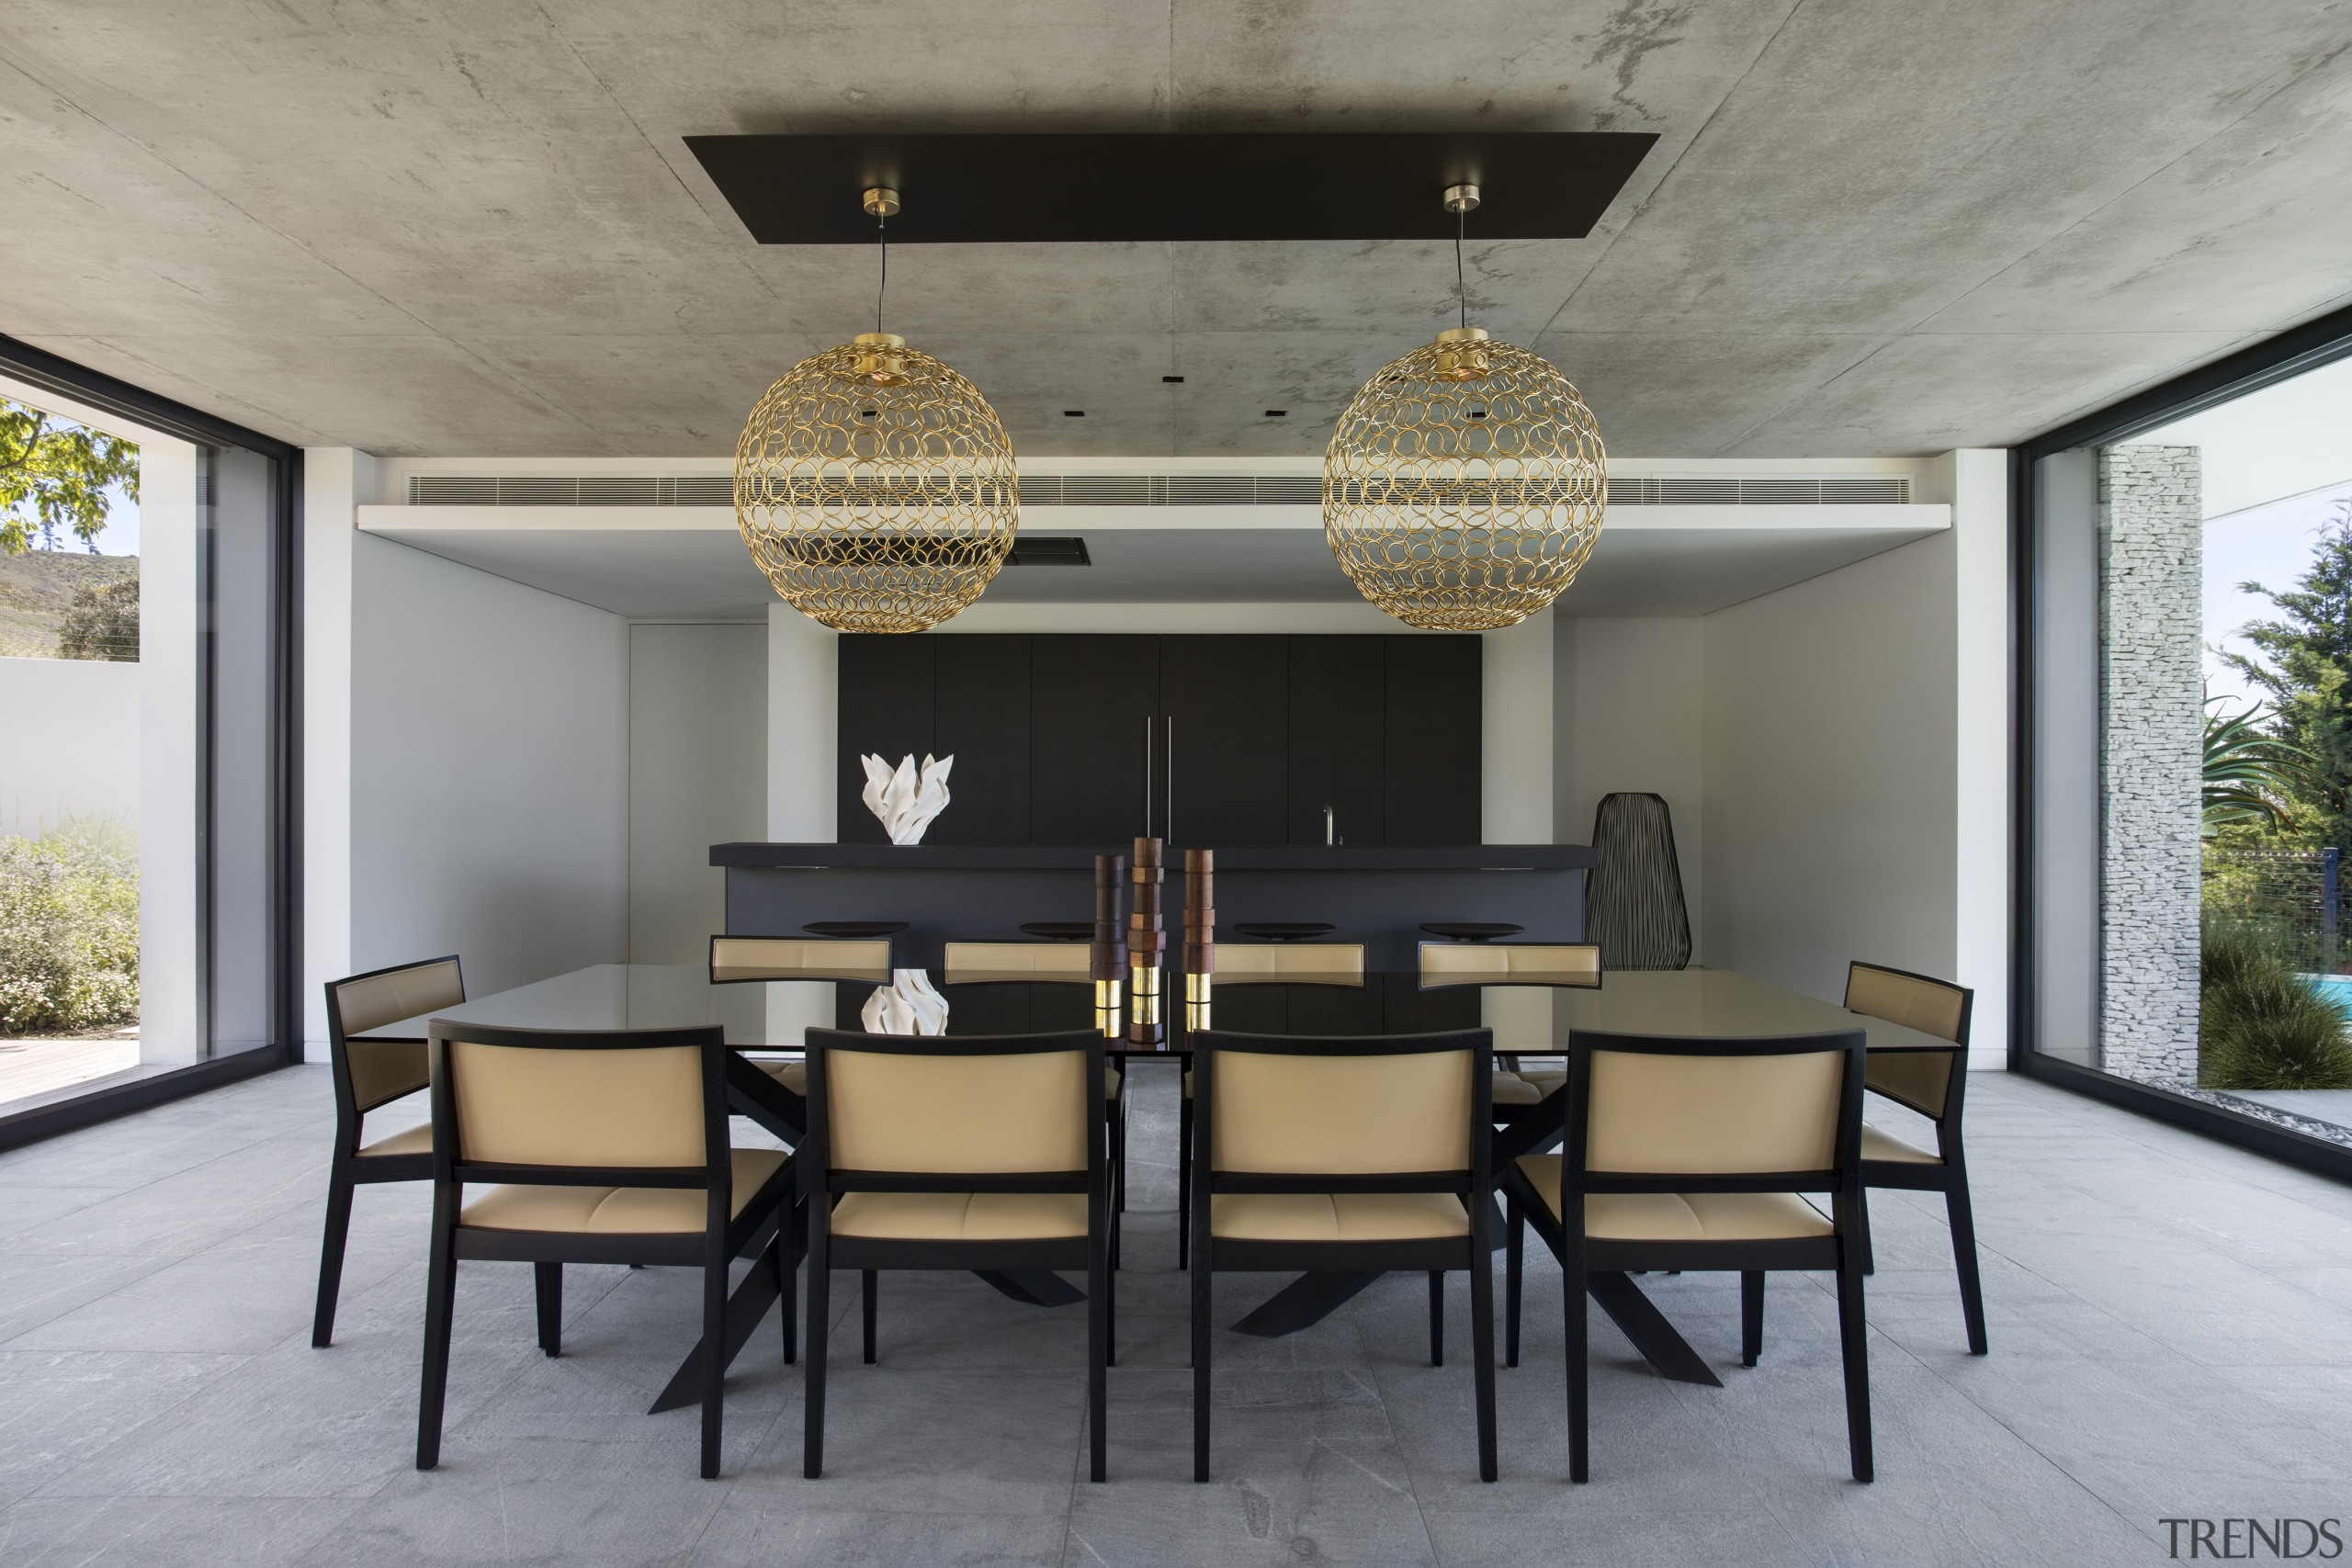 The dining room and kitchen are in the architecture, chair, dining room, furniture, house, interior design, living room, table, gray